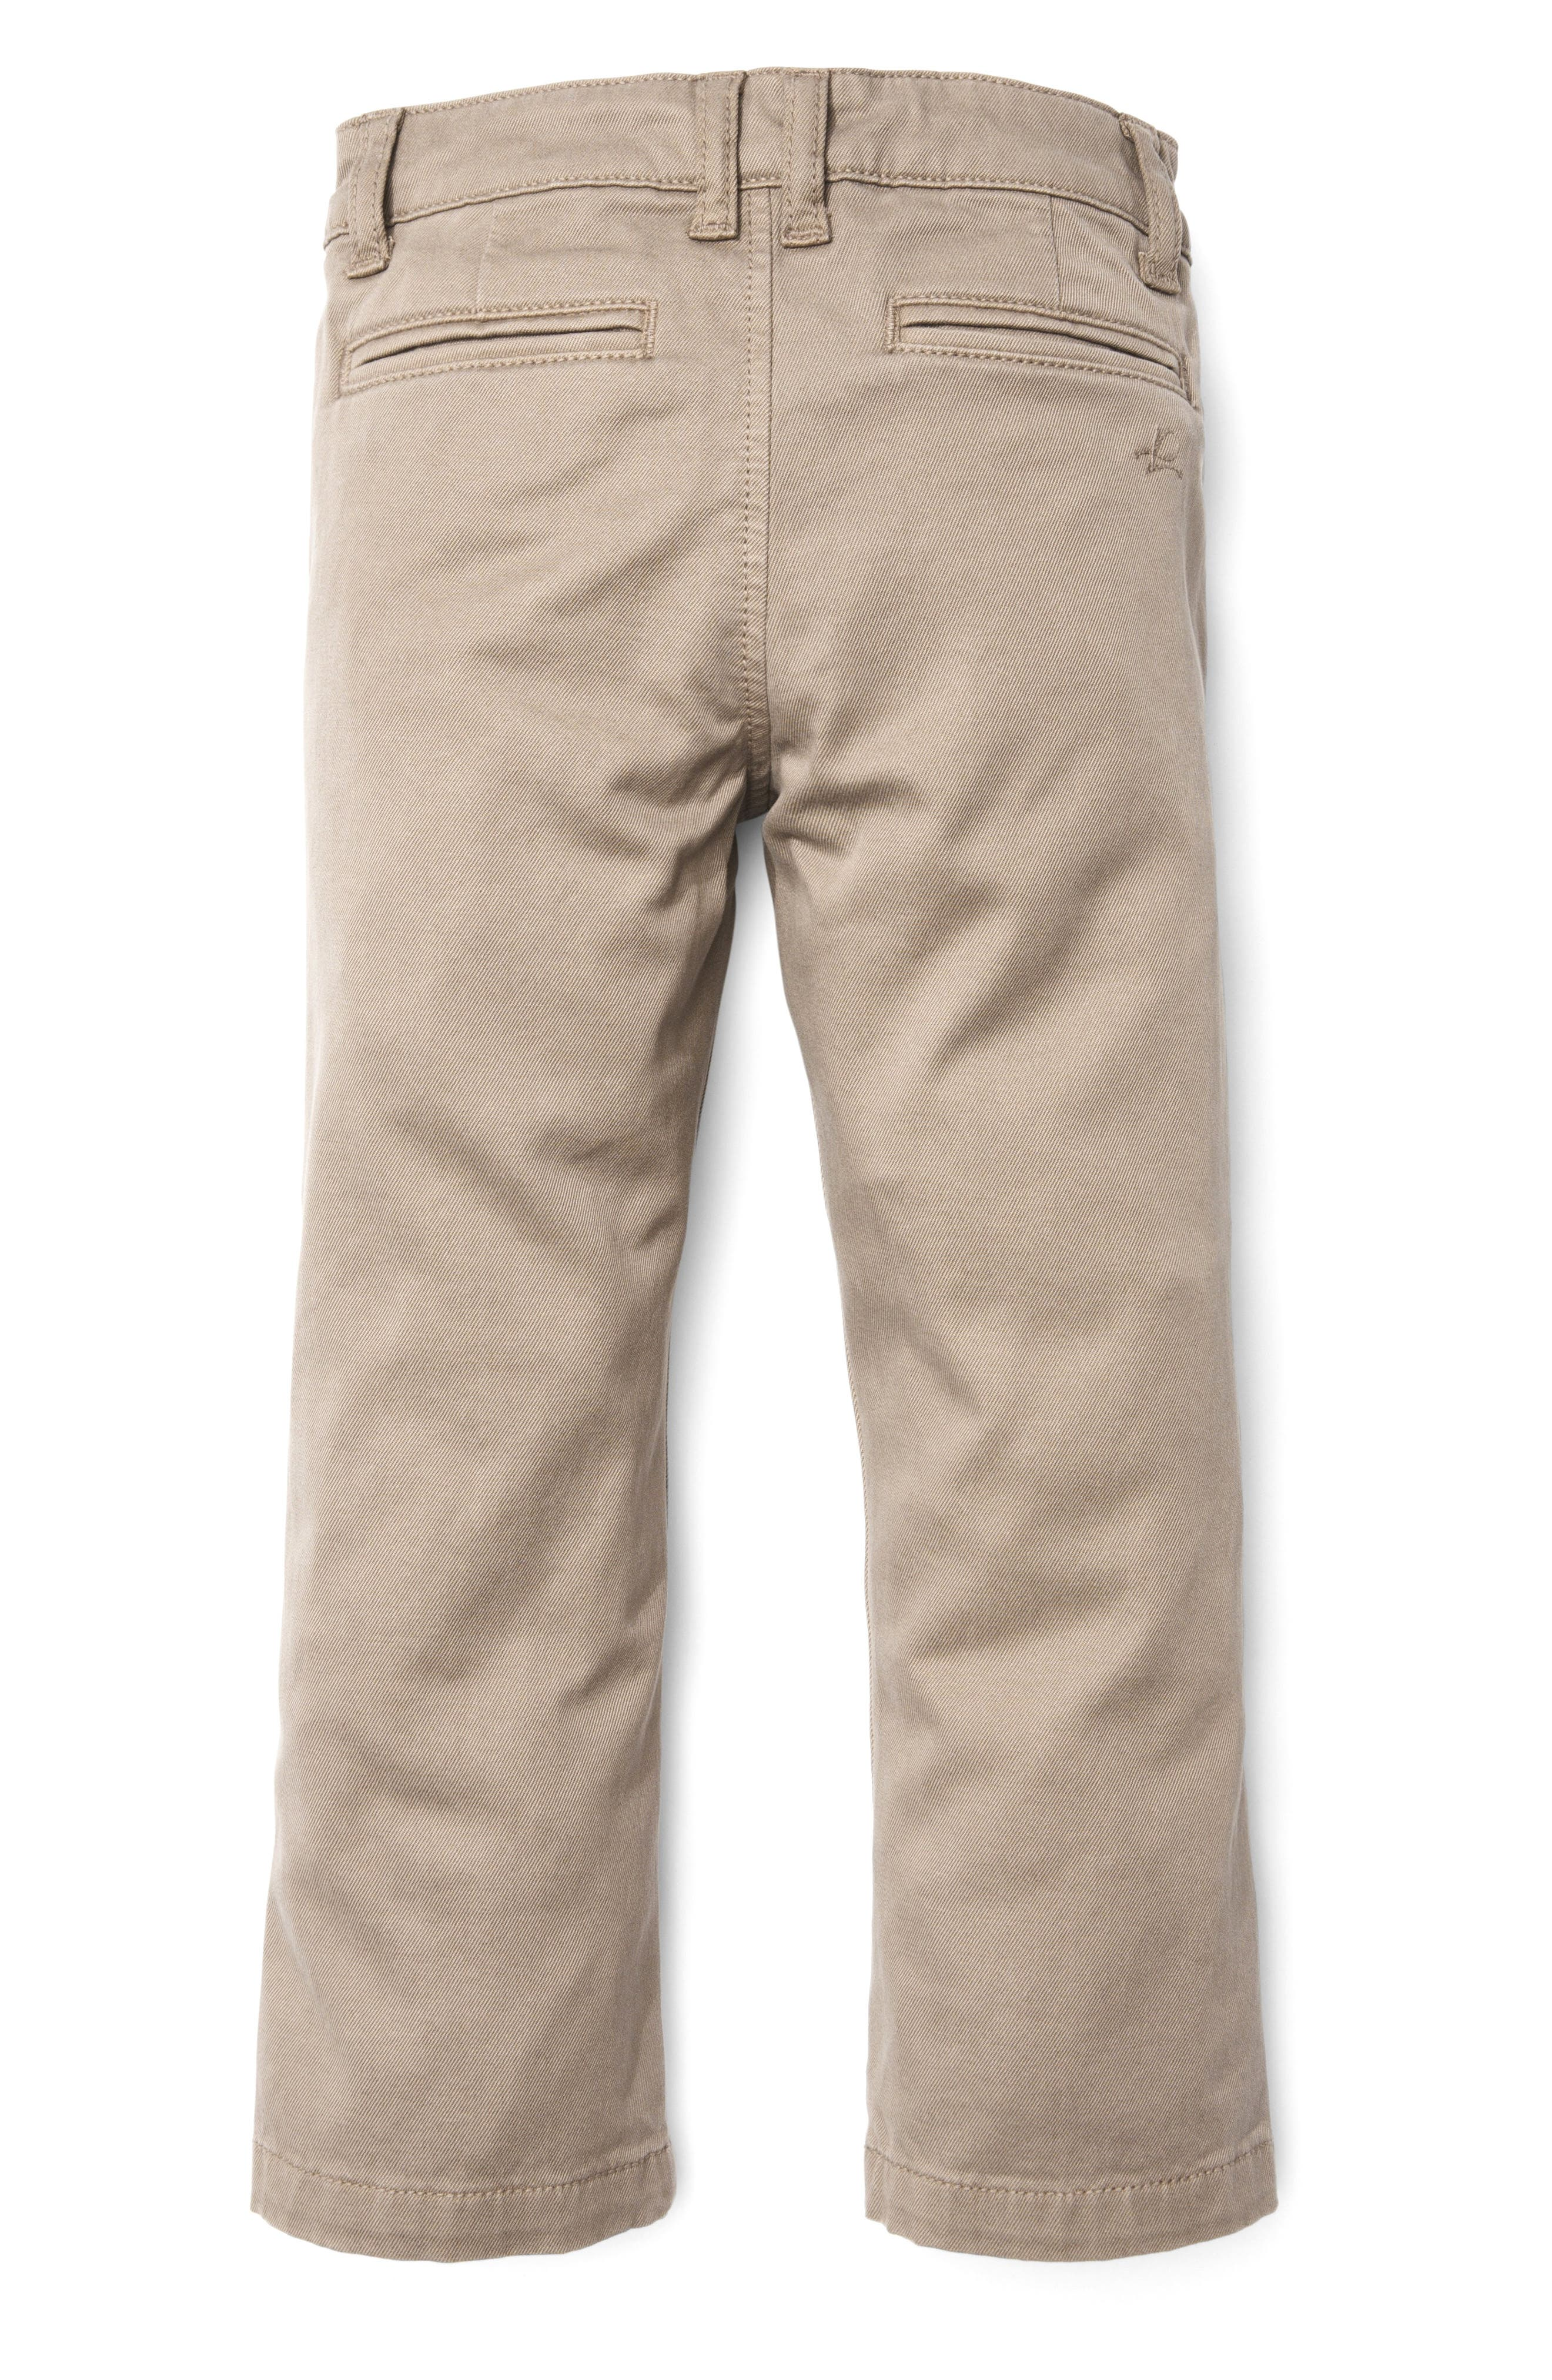 Timmy Slim Fit Chinos,                             Alternate thumbnail 2, color,                             251